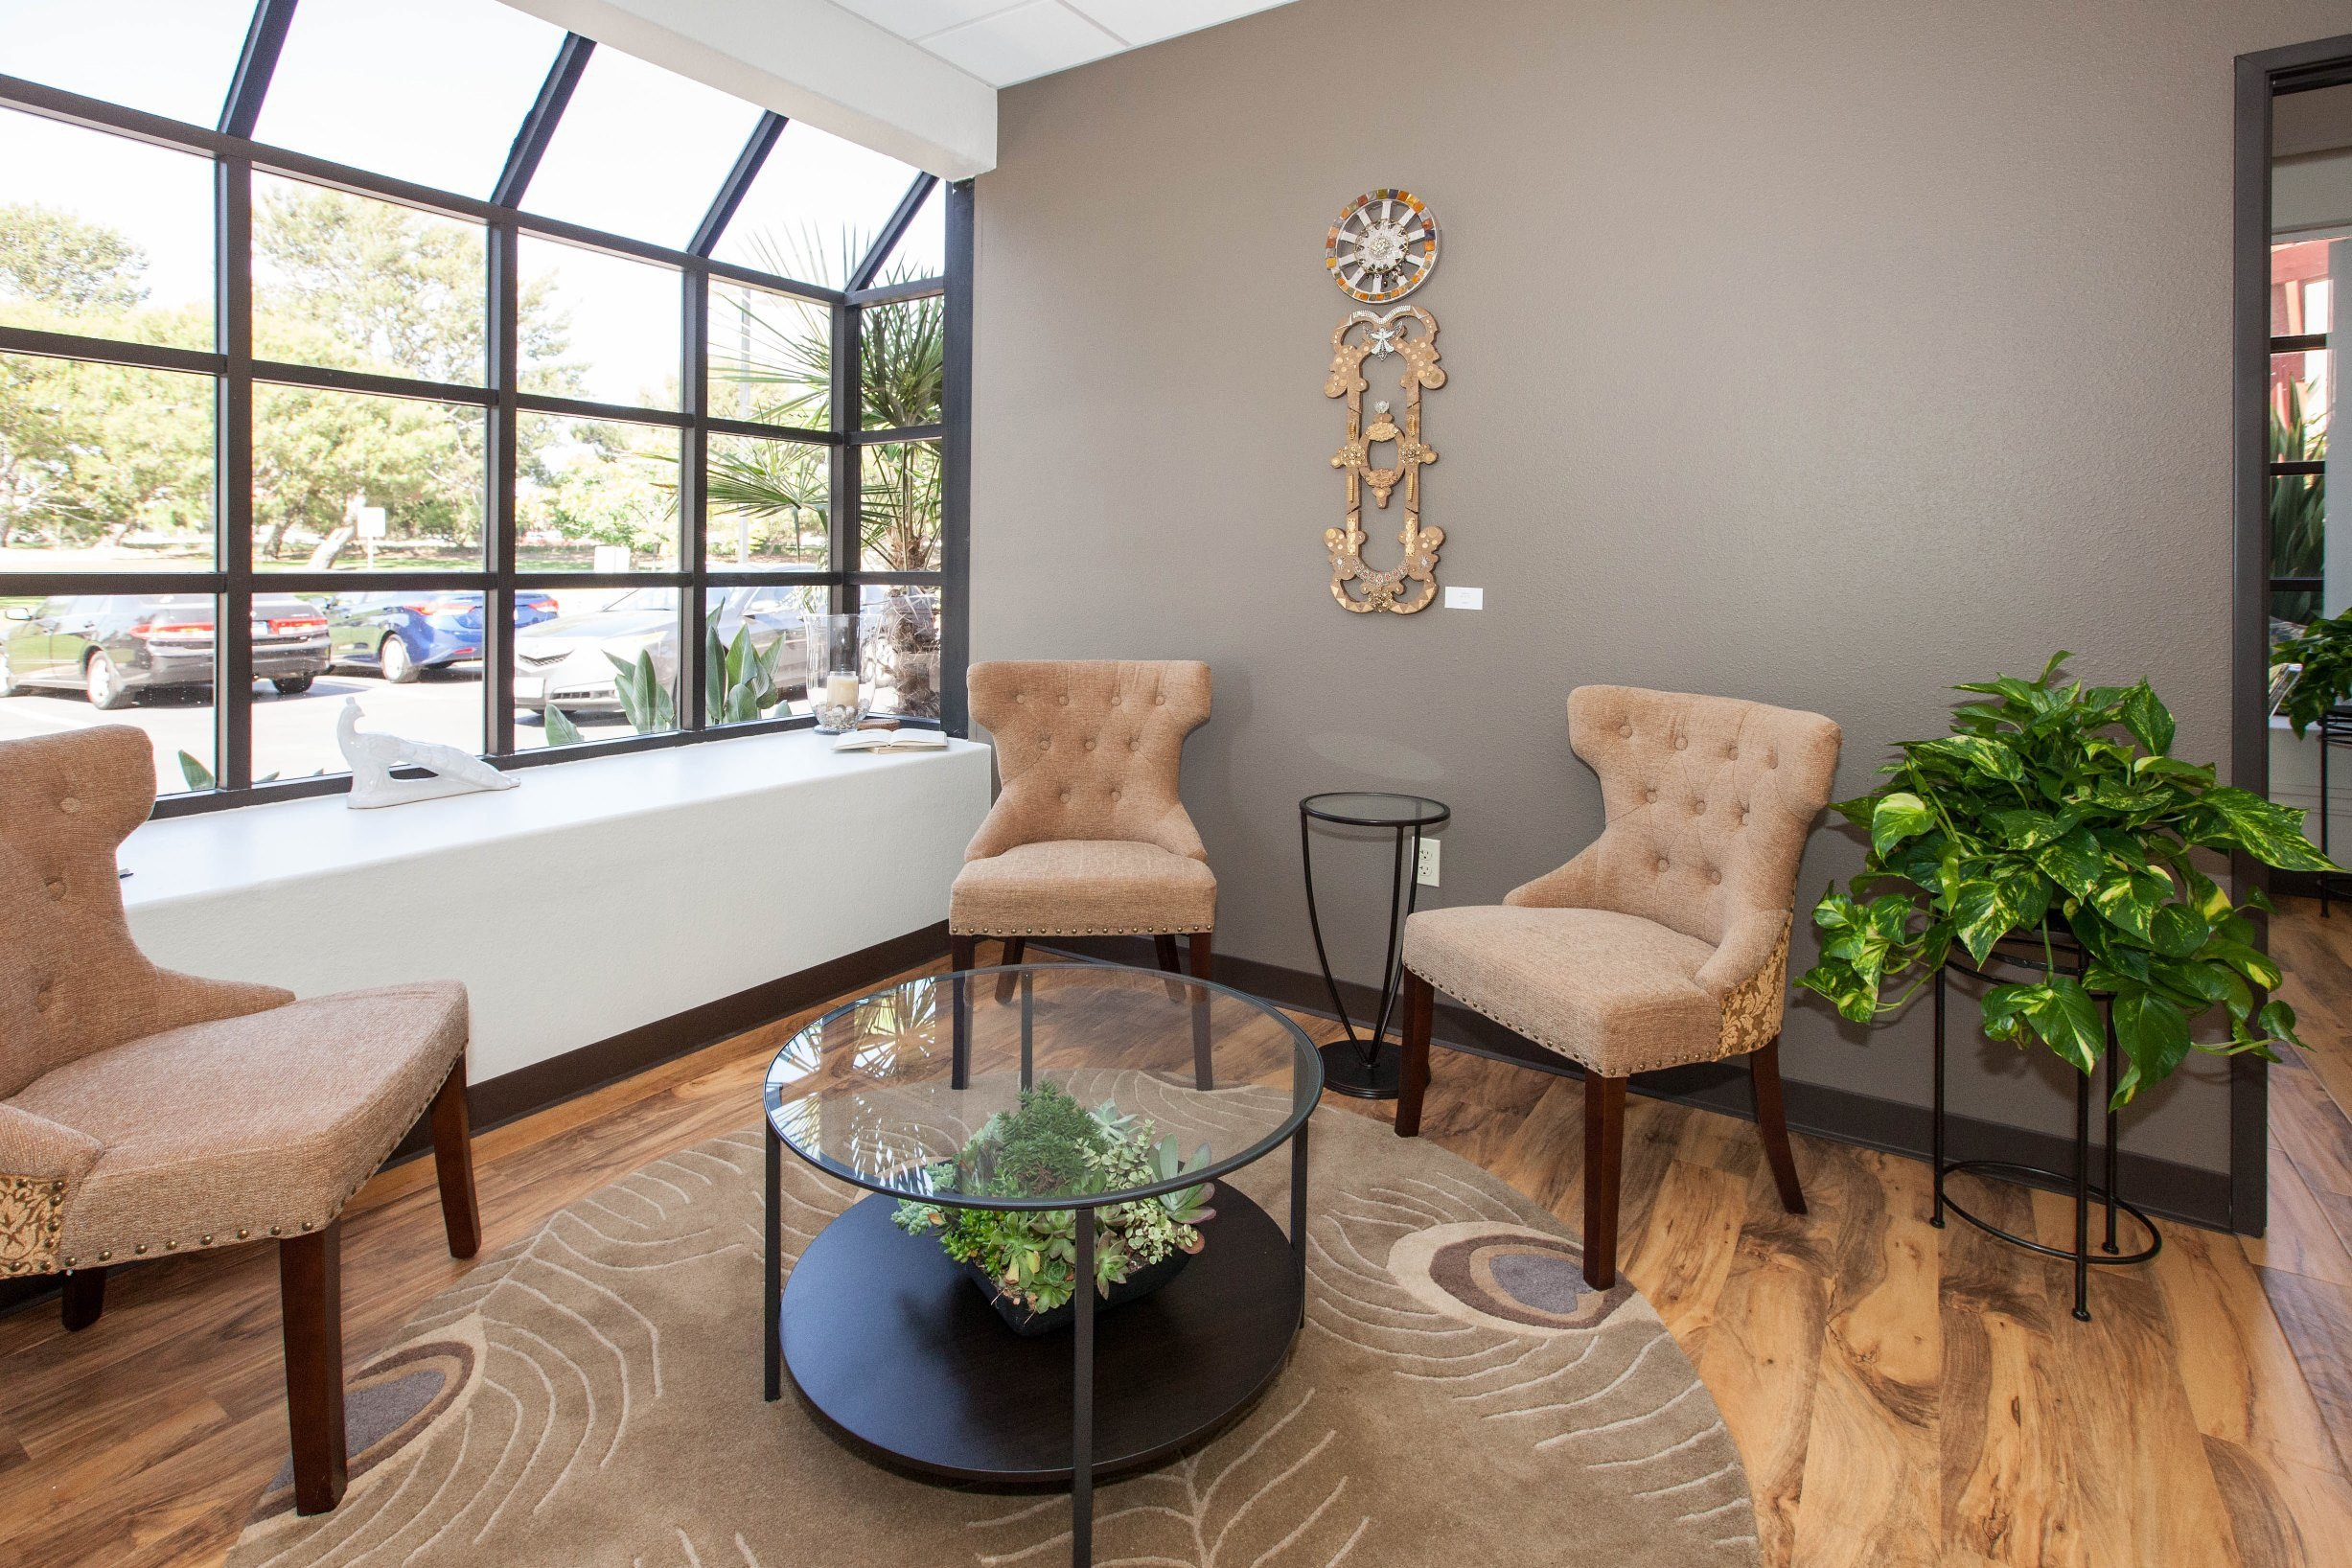 Hera Hub opened its first location in San Diego and has expanded to three other locations in the U.S. (Source: Natalia Robert/Full Circle Images via Hera Hub)